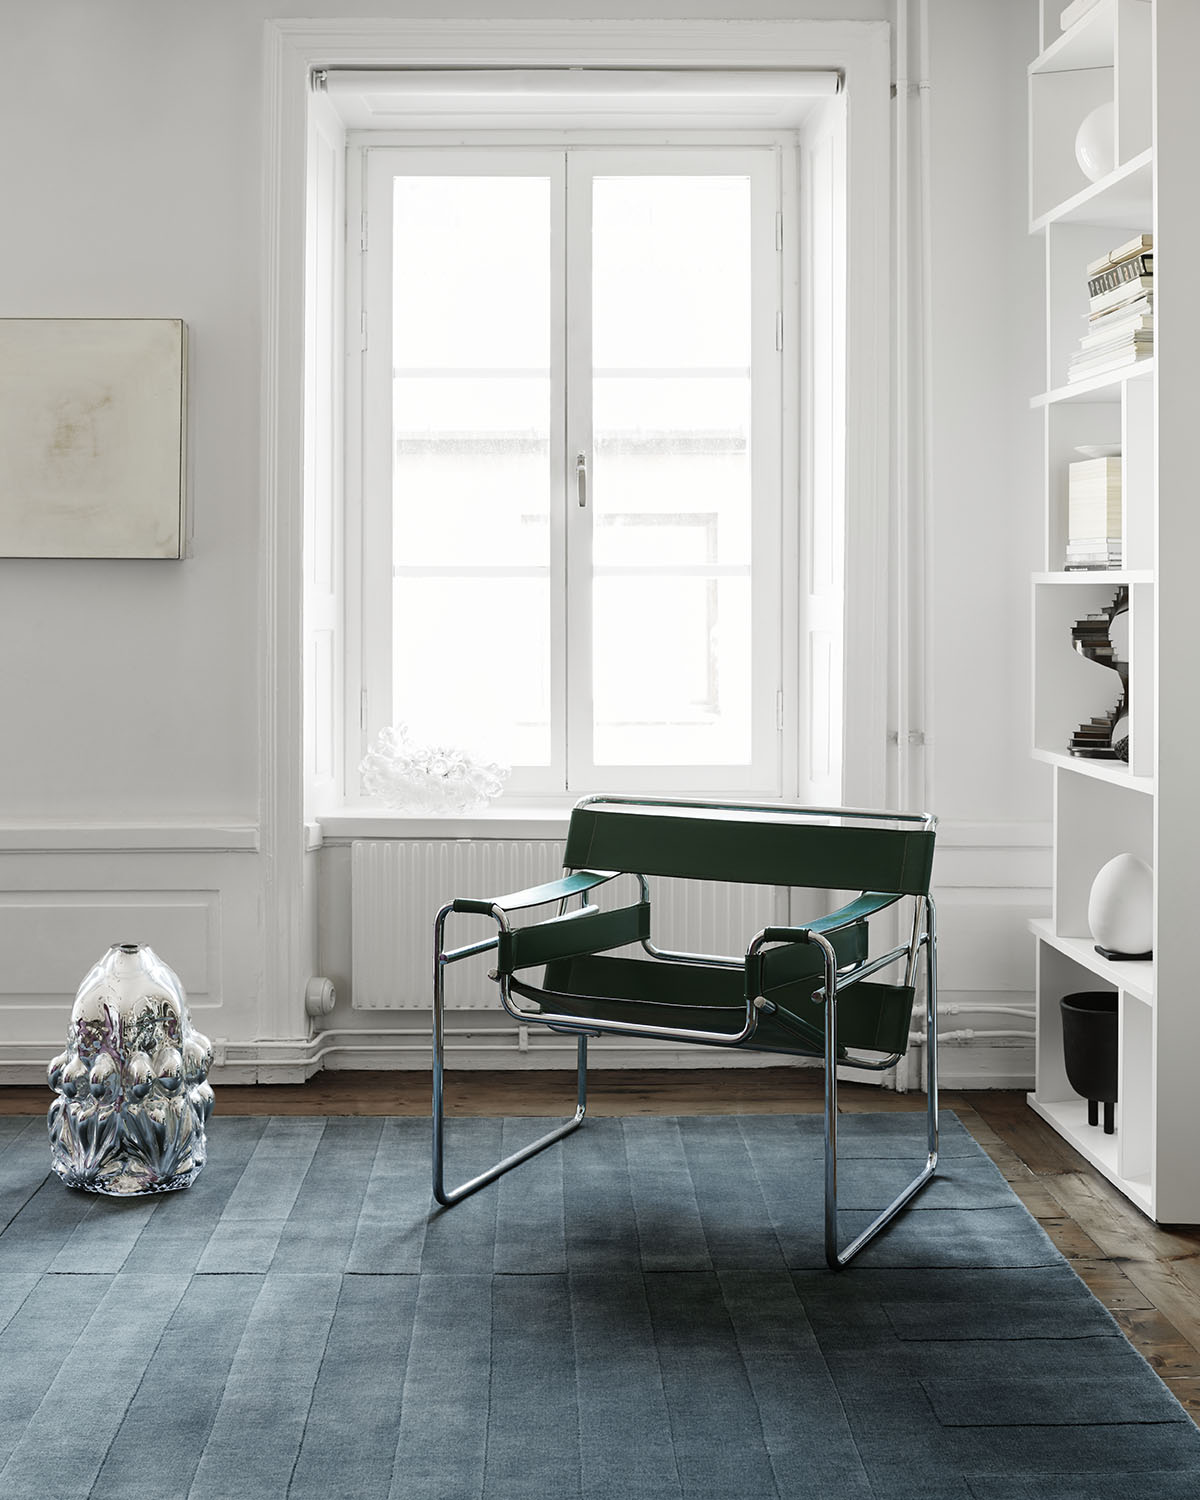 The plush rug Lux 2 in color Petrolium displayed in a light, white apartment with a classic leather and steel chair.